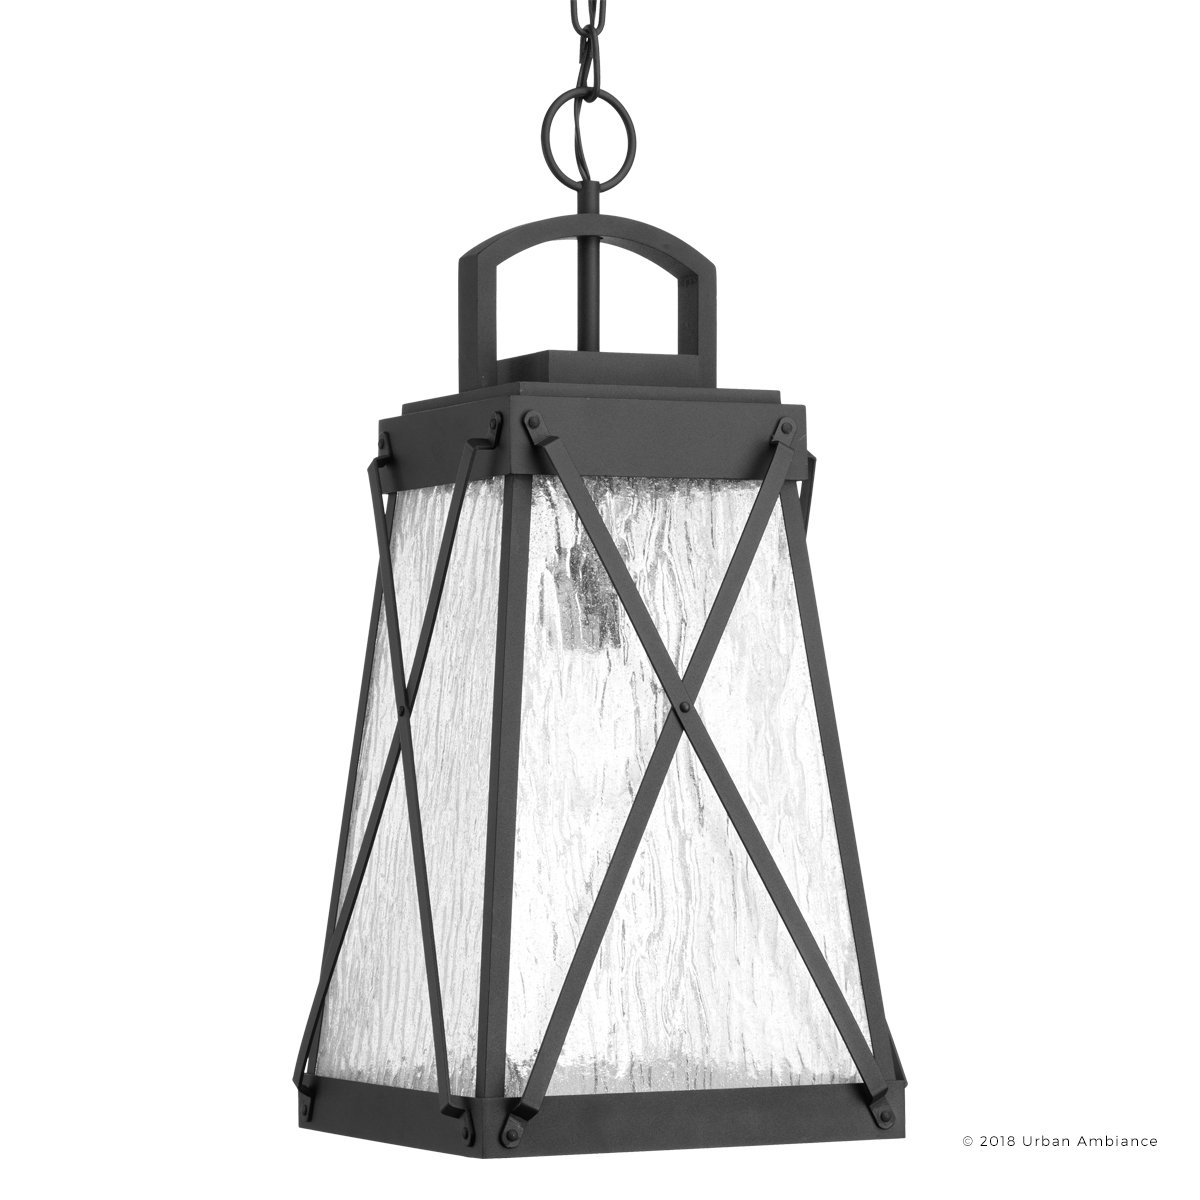 Luxury English Tudor Outdoor Pendant Light, Large Size: 21.625''H x 10.5''W, with Rustic Style Elements, Midnight Black Finish, UHP1059 from The Saint Paul Collection by Urban Ambiance